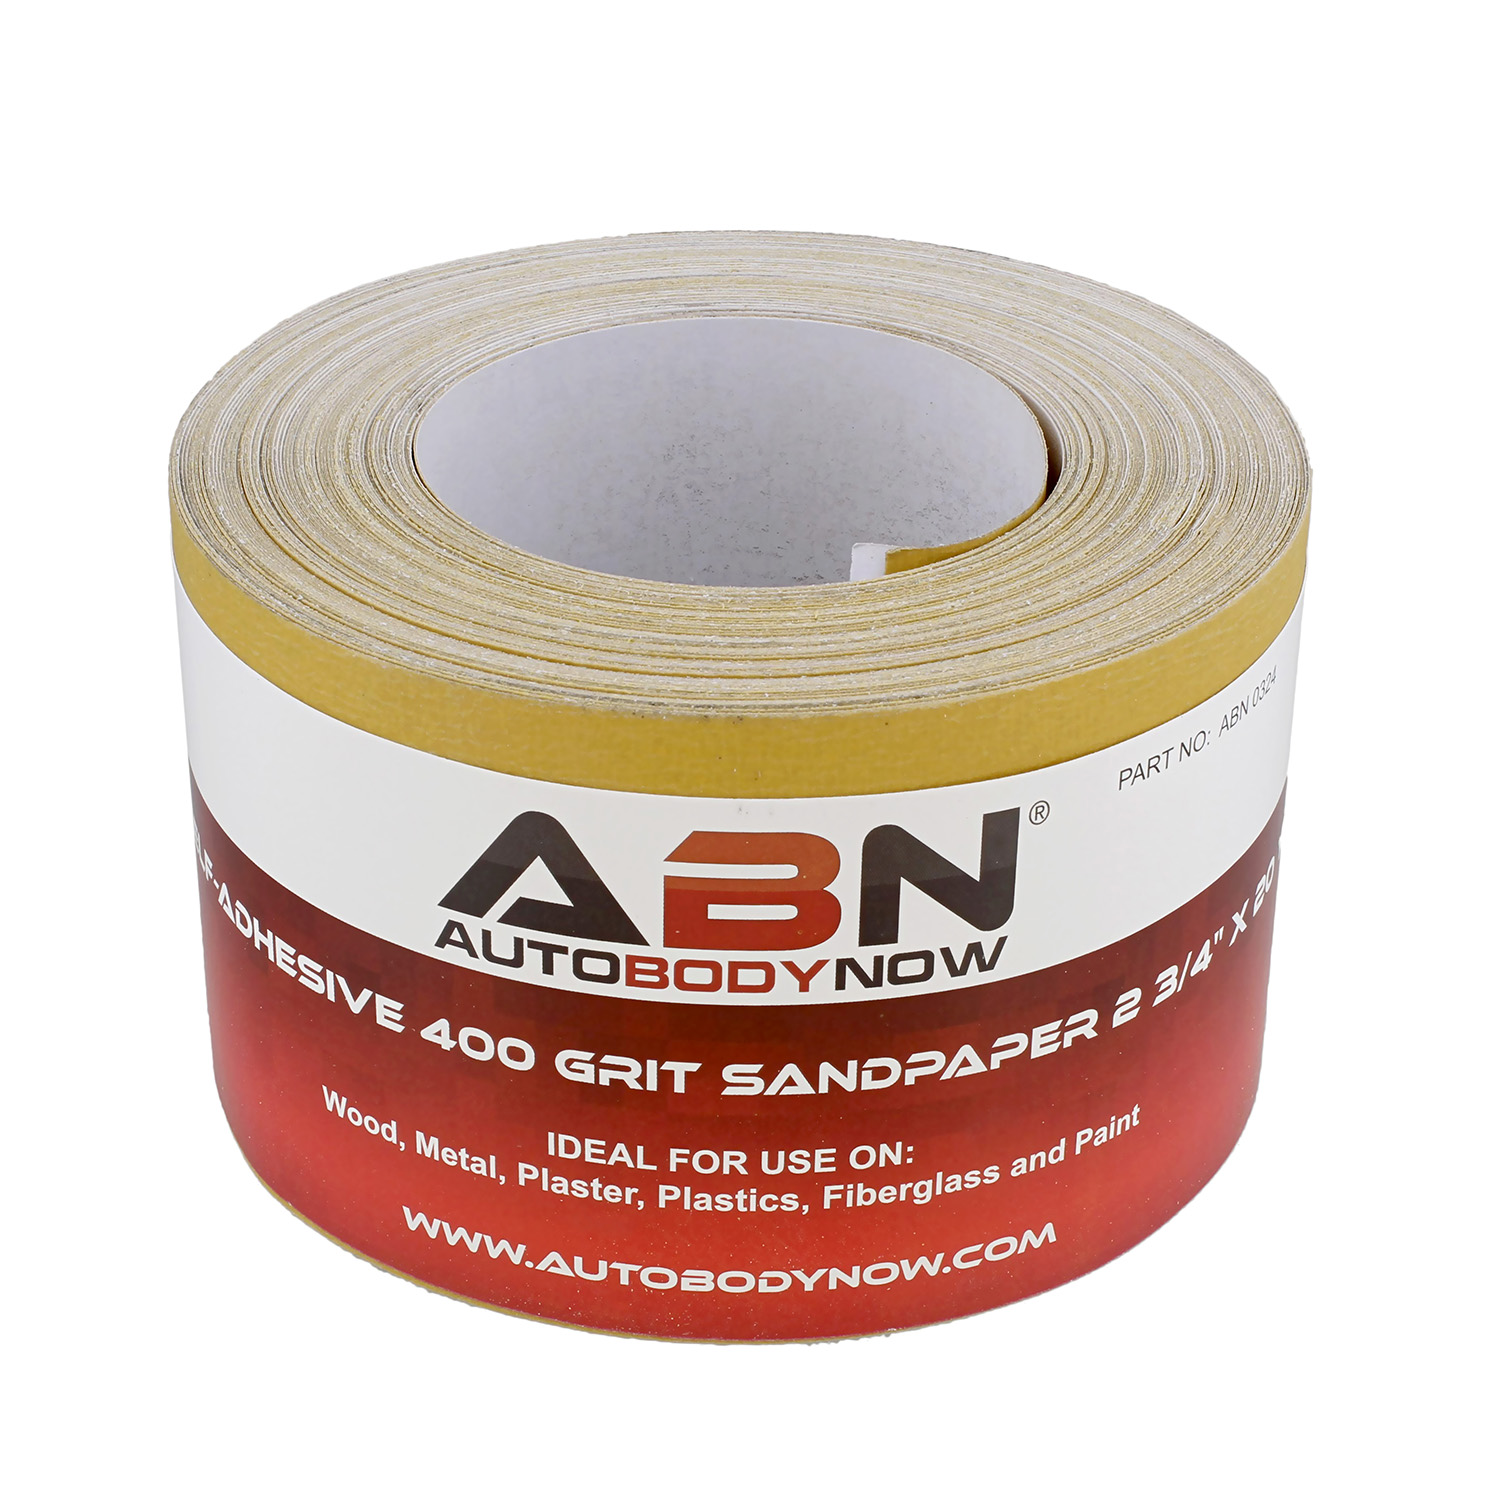 ABN-Adhesive-Sandpaper-Roll-2-3-4-Inch-x-20-Yards-Aluminum-Oxide-PSA thumbnail 34